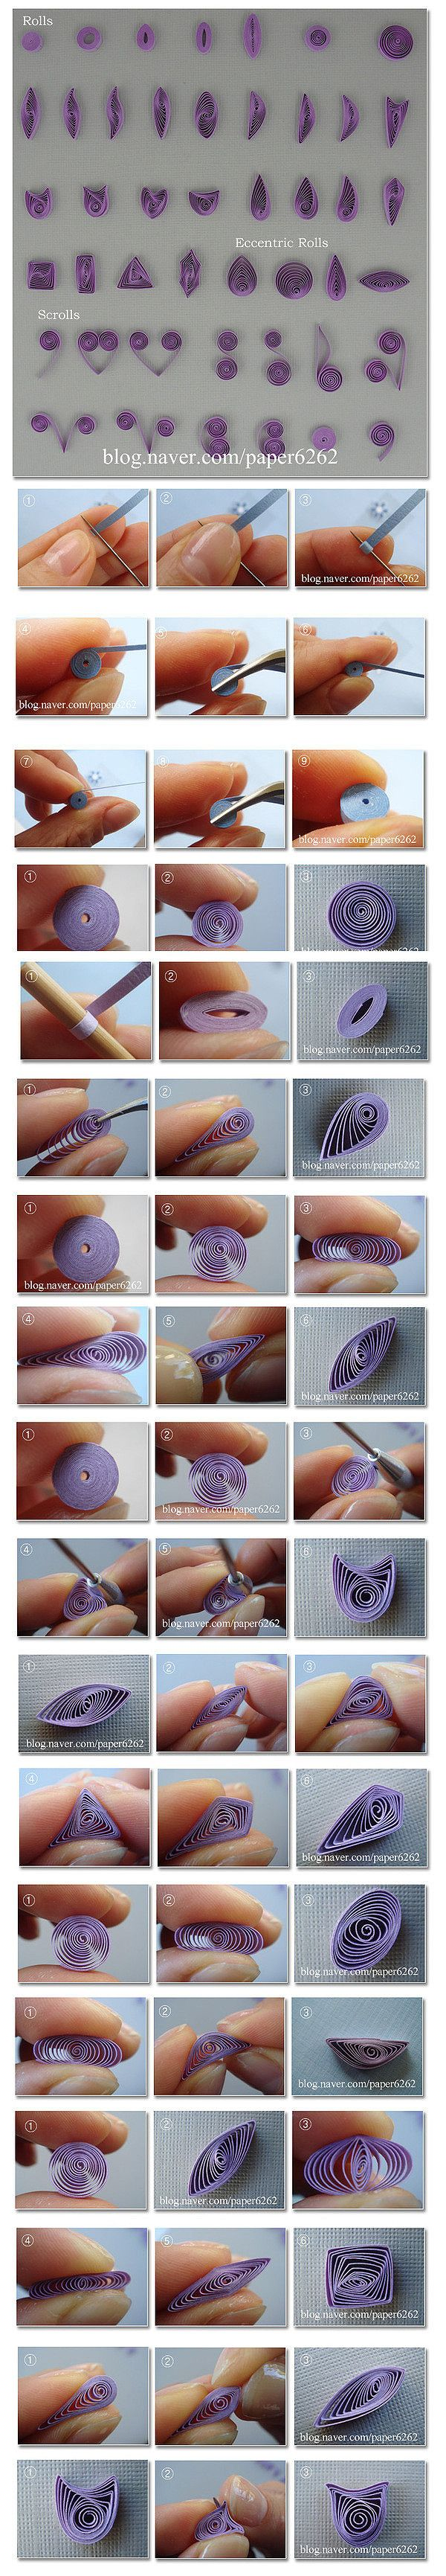 quilling tutorial - pics demonstrating different kinds of techniques ... a great resource  quick reference  for beginners !